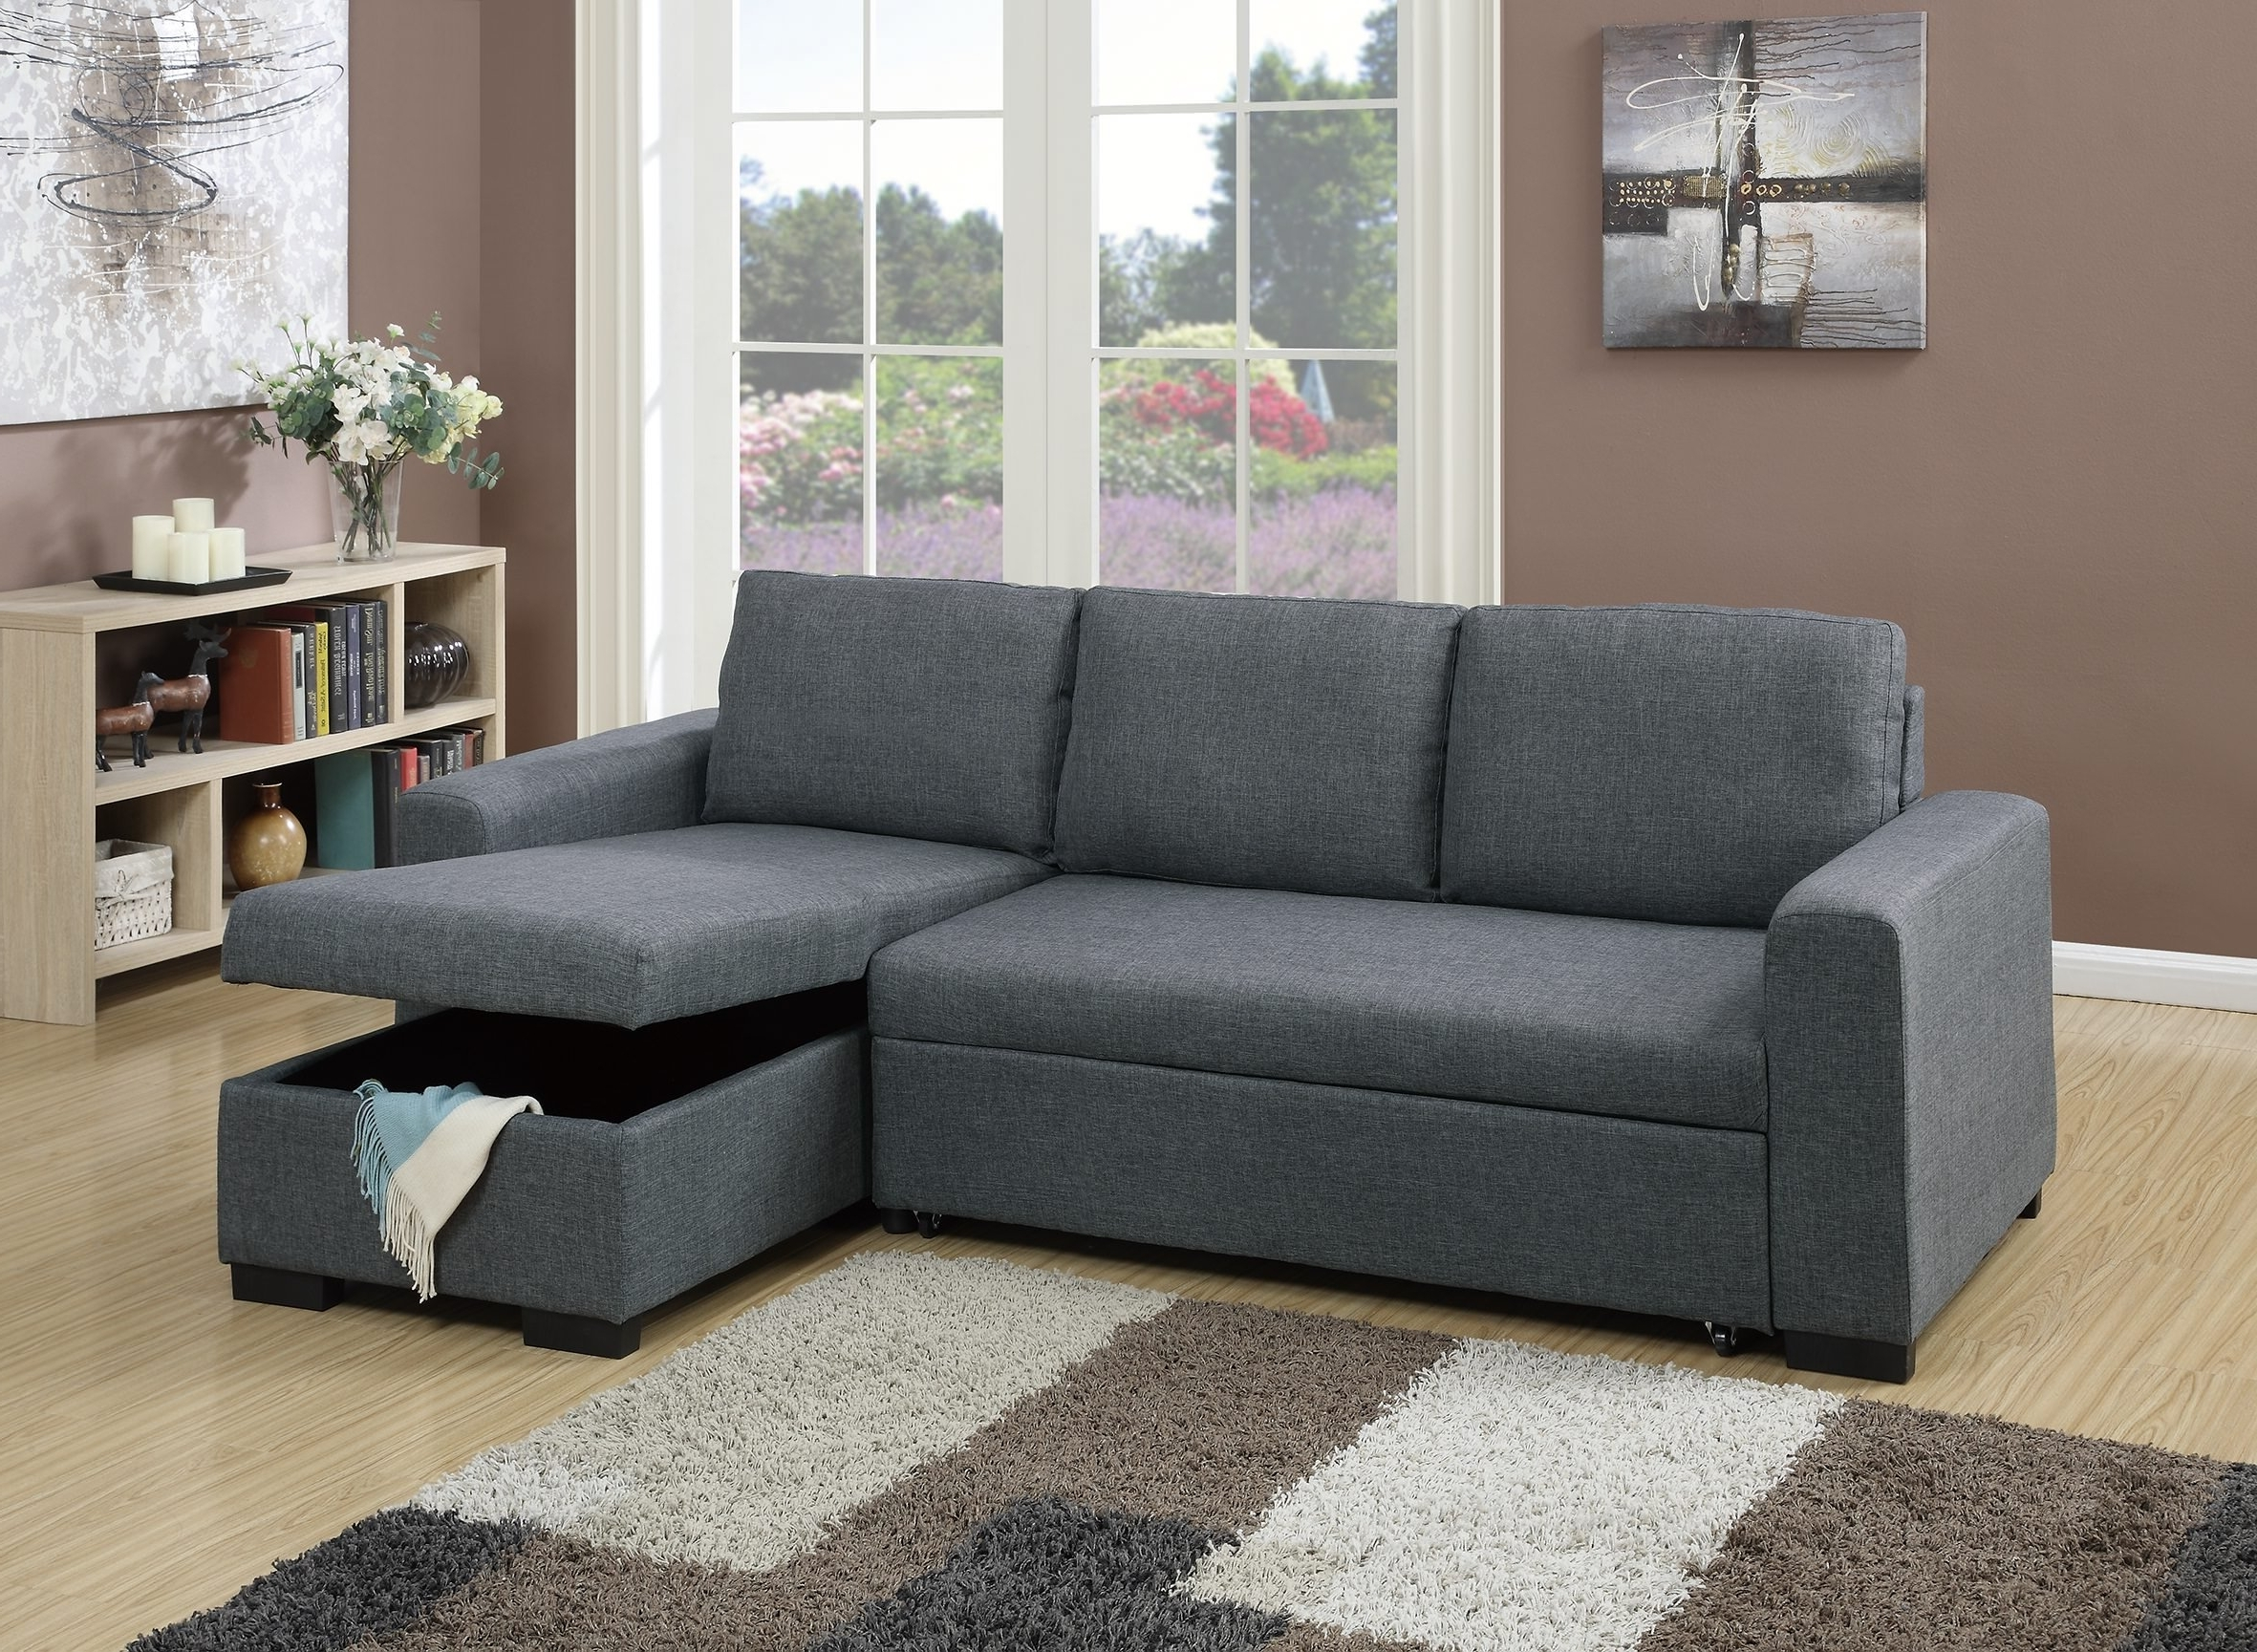 Favorite F6931 Blue Gray Convertible Sectional Sofapoundex In Convertible Sectional Sofas (View 12 of 20)